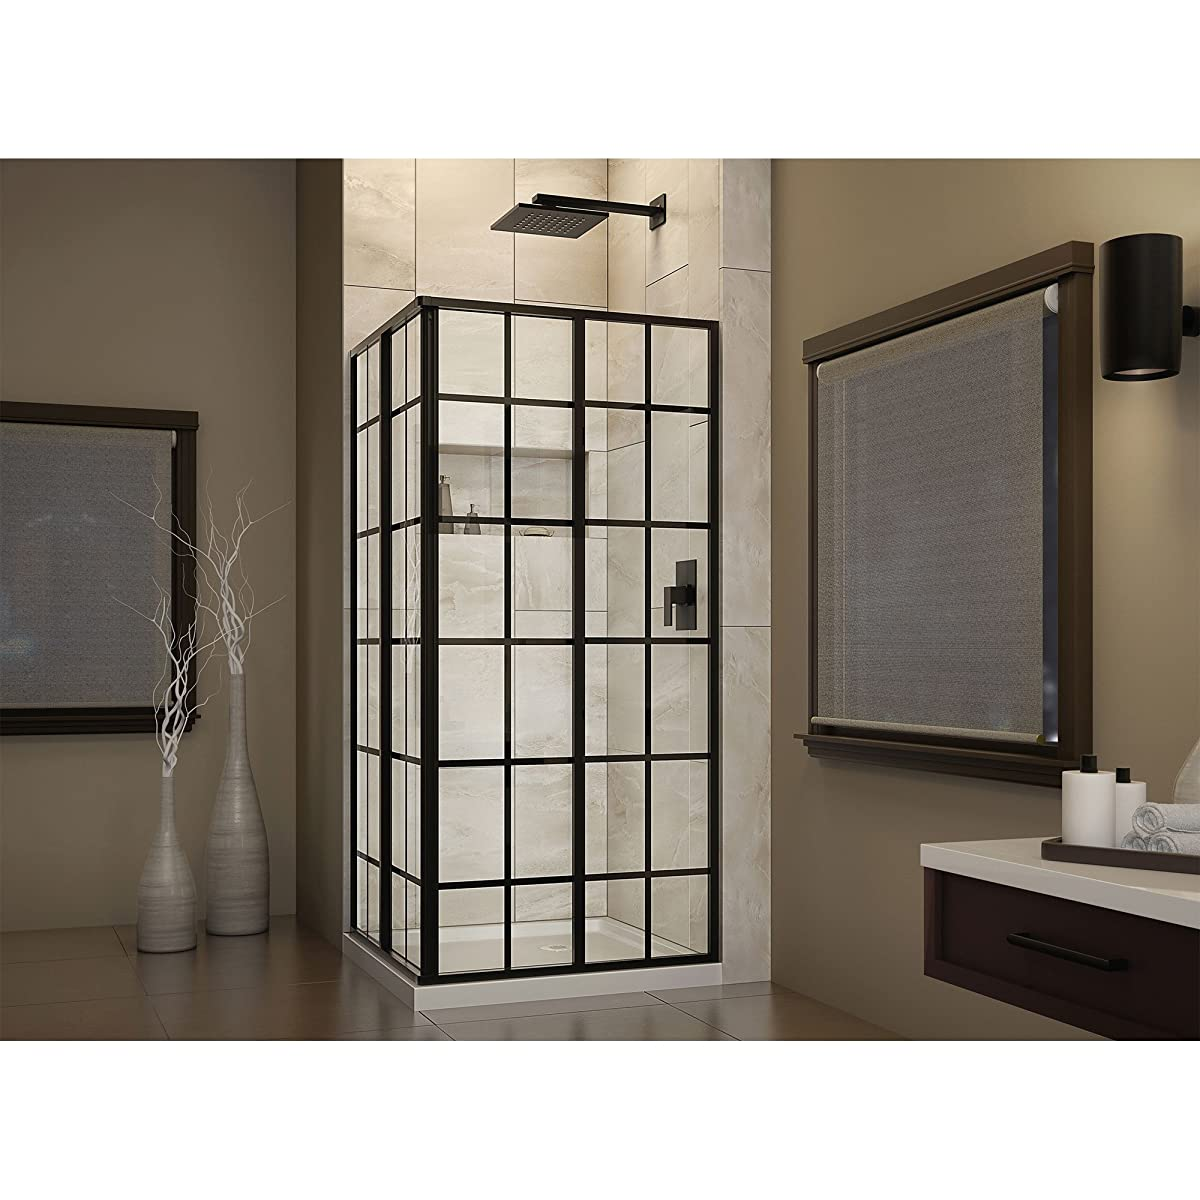 "DreamLine French Corner 34 1/2 in. D x 34 1/2 in. W, Framed Sliding Shower Enclosure, 5/32"" Glass, Satin Black Finish"